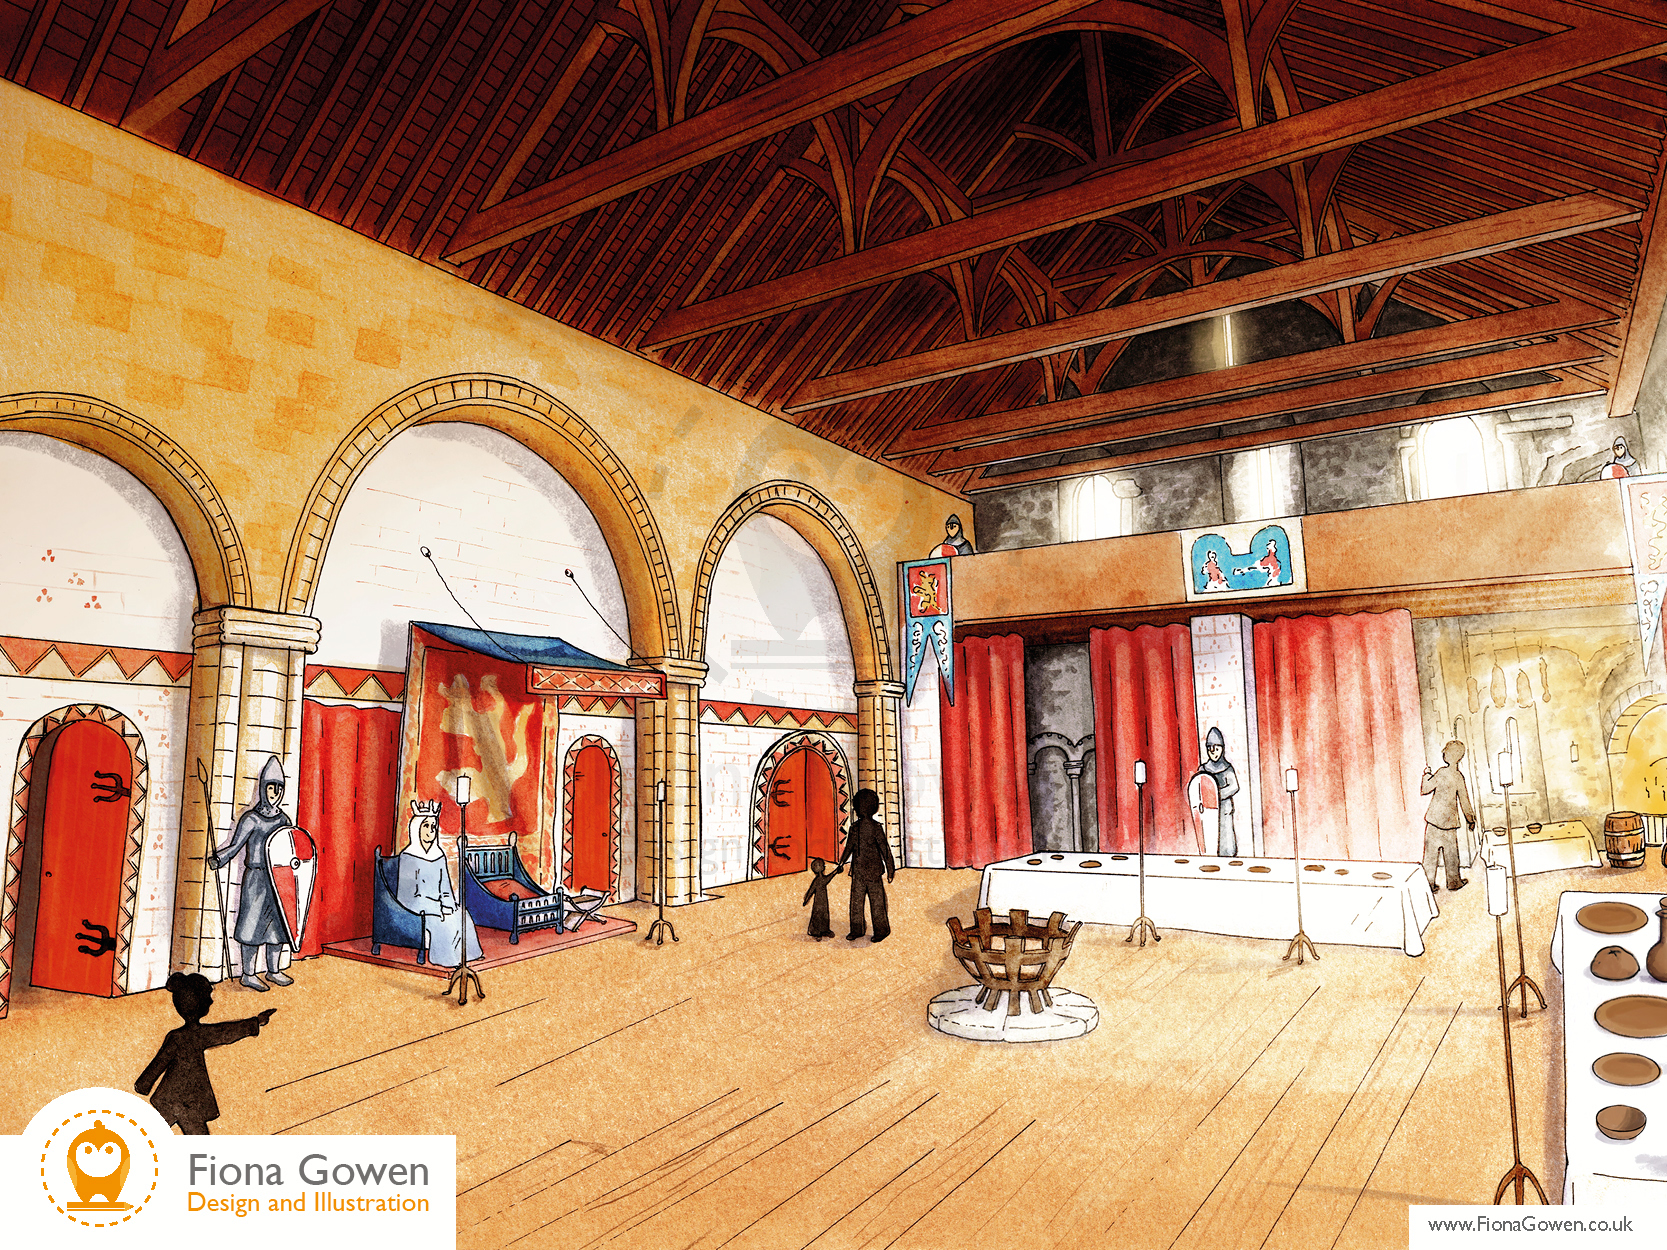 An Artists impression of the great Hall for the Norwich Castle Keep redevelopment project